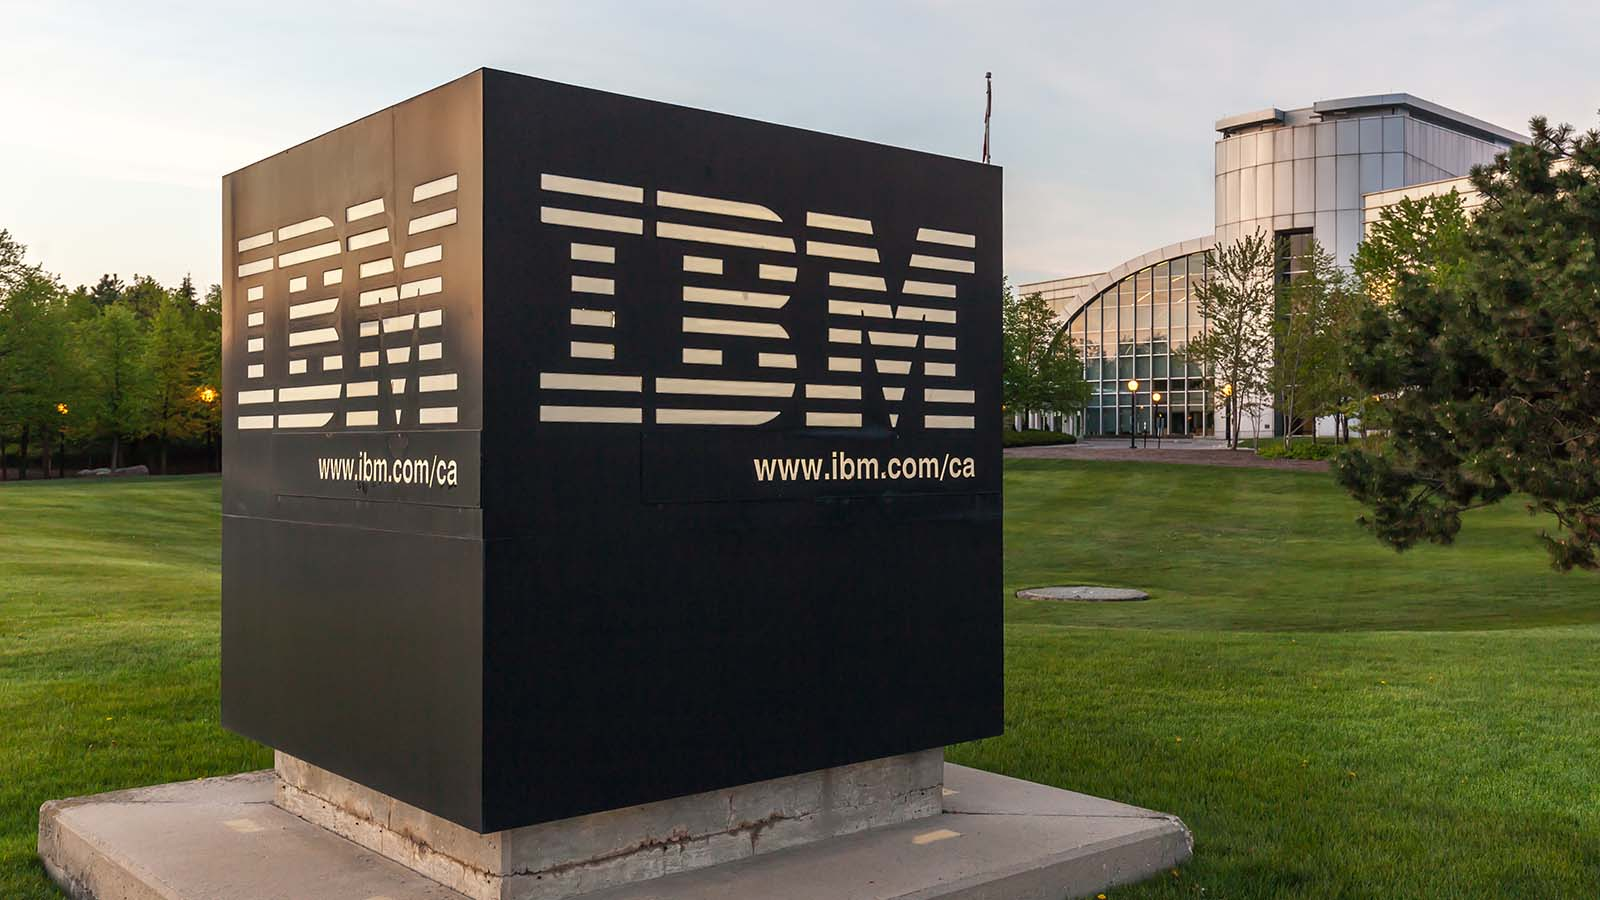 3 Undeniable Reasons to Buy IBM Stock Right Now | InvestorPlace